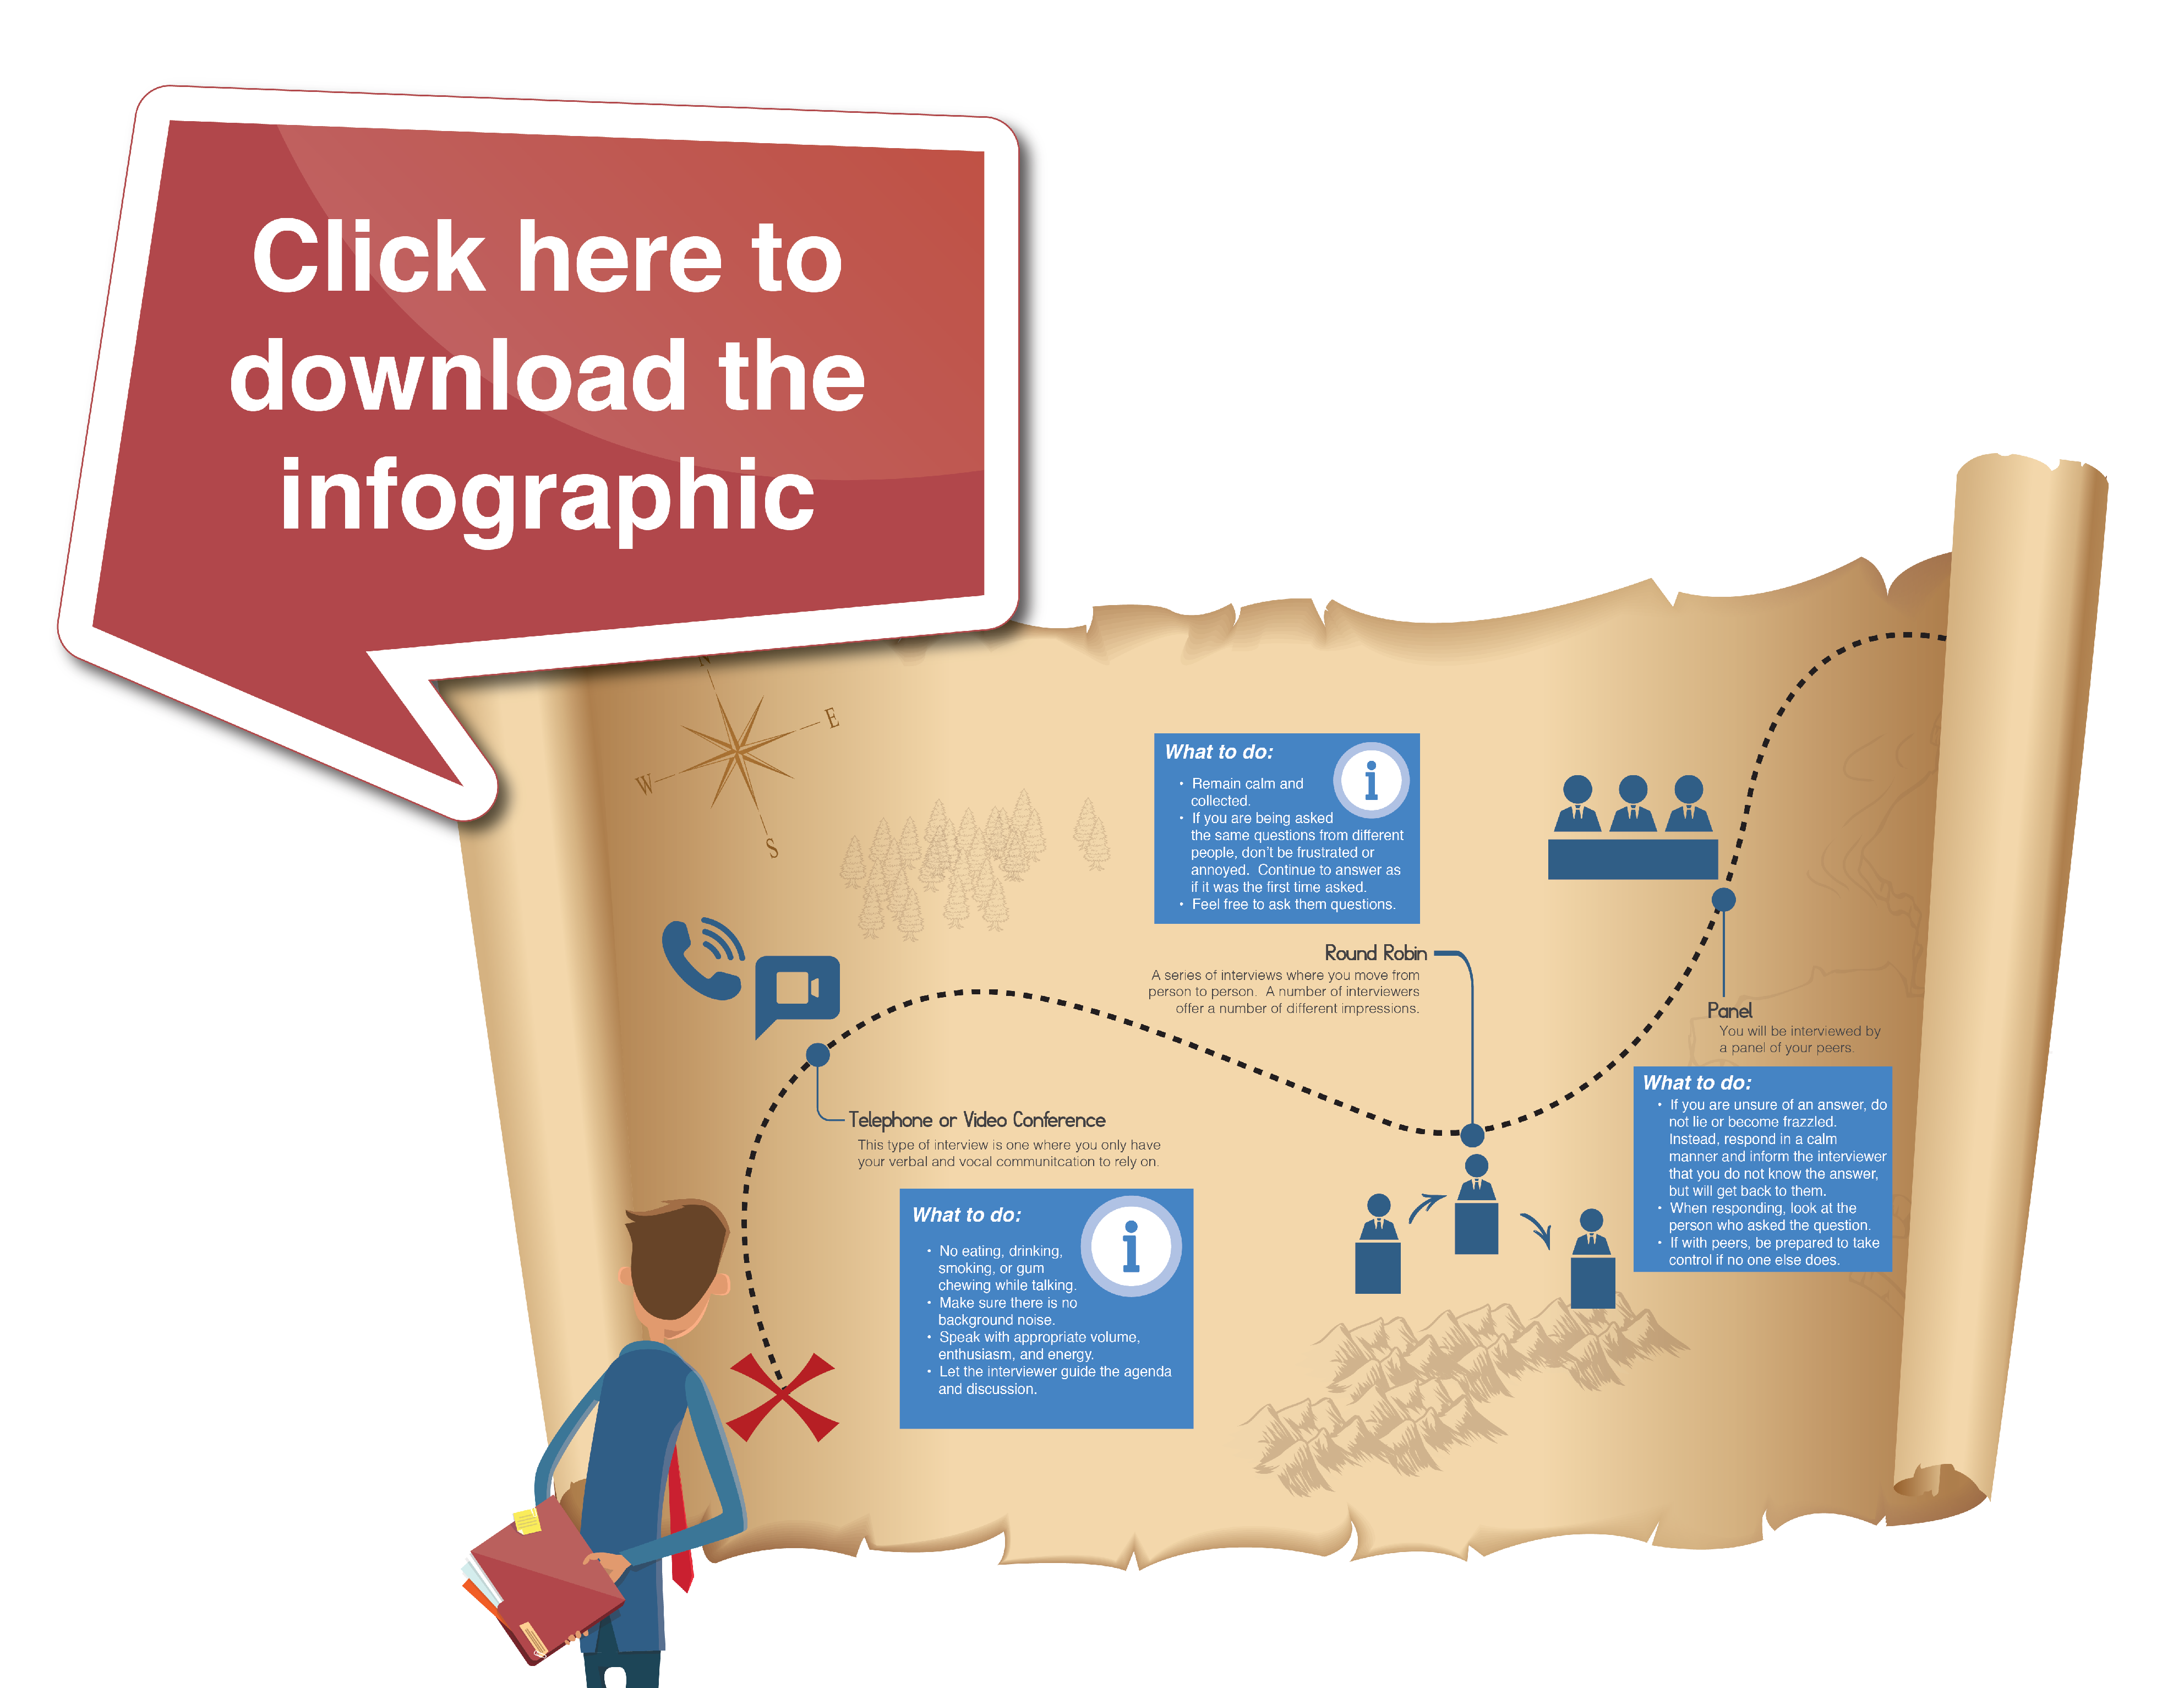 Click here to view the interview styles infographic!